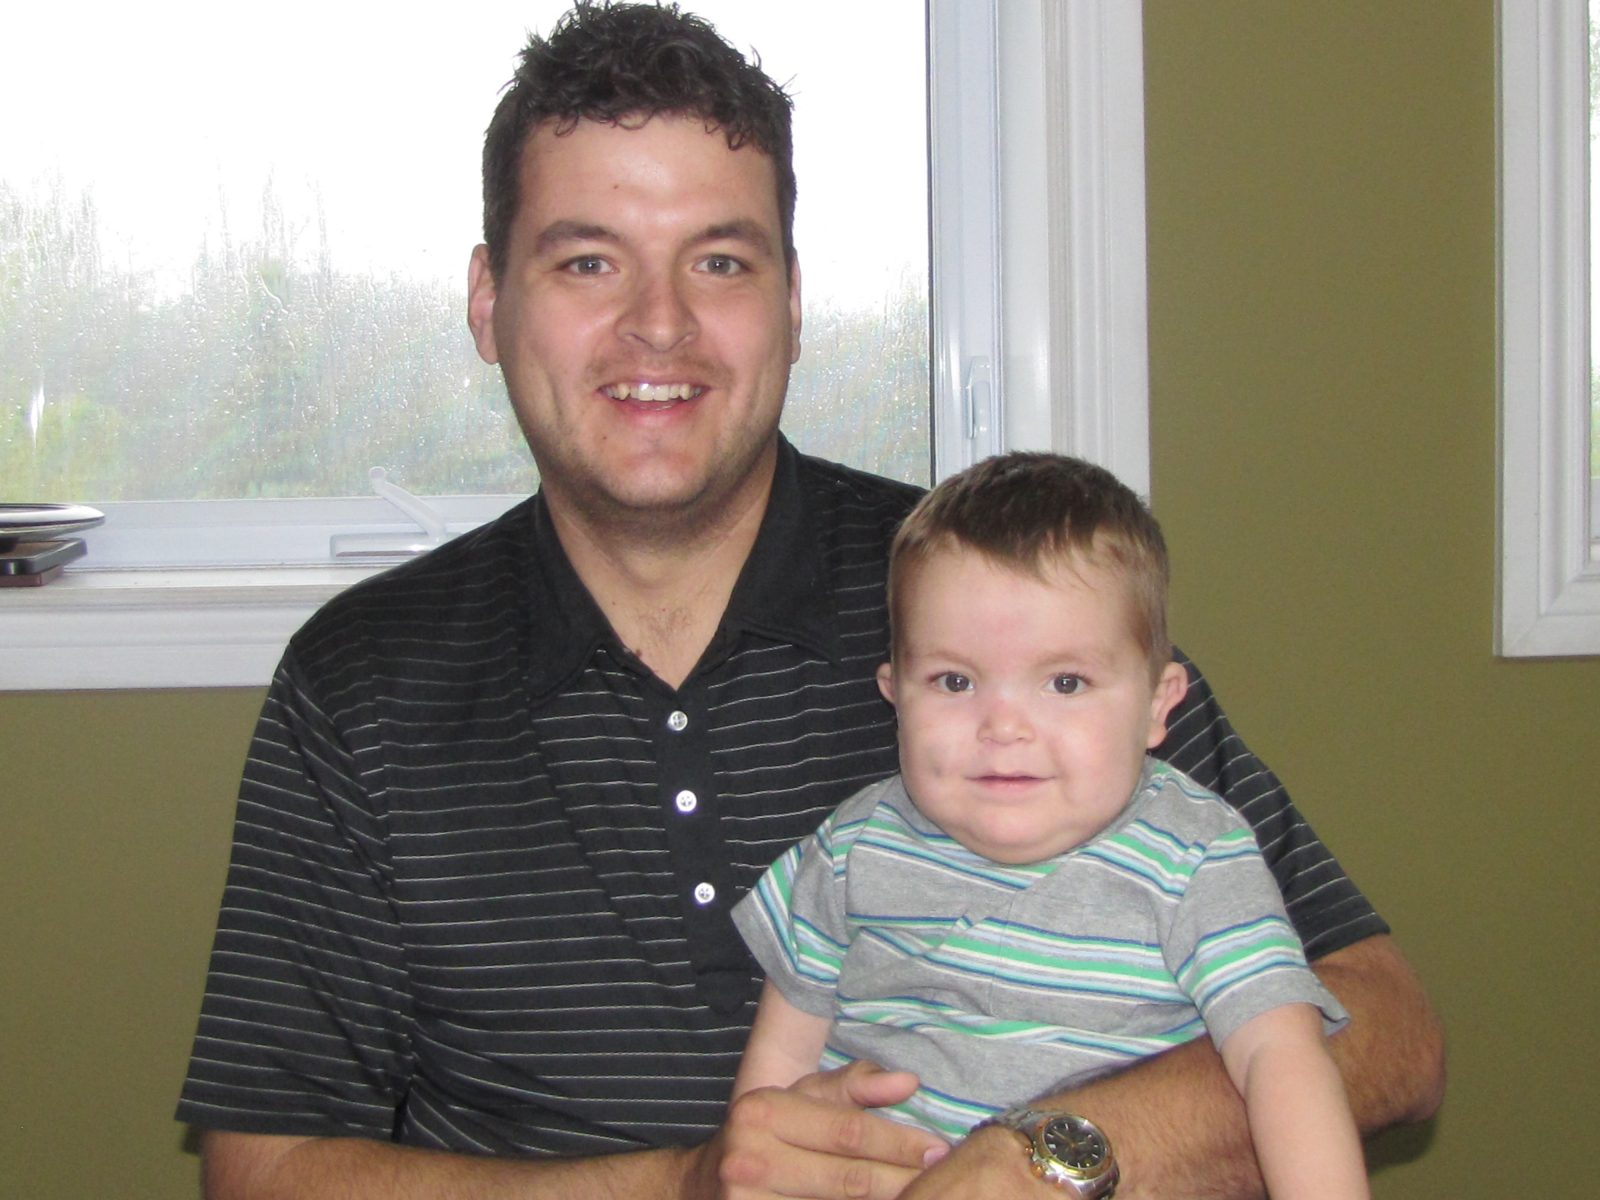 Cornwall father donates kidney to two-year-old son